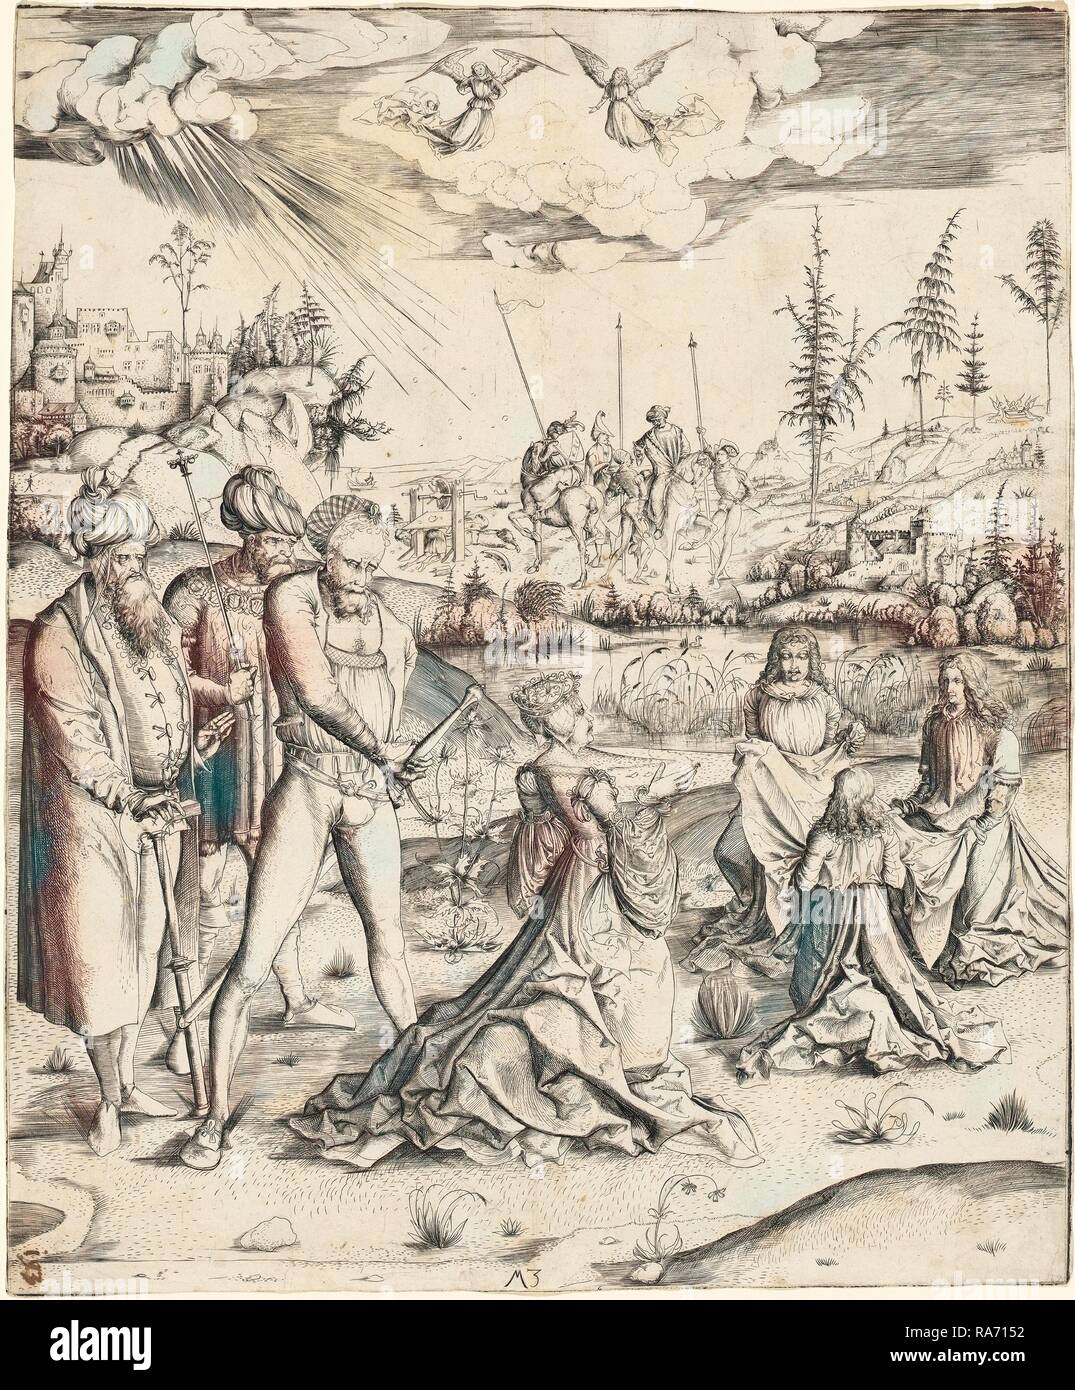 Master MZ, German (active c. 1500), The Martyrdom of Saint Catherine, engraving on laid paper. Reimagined - Stock Image